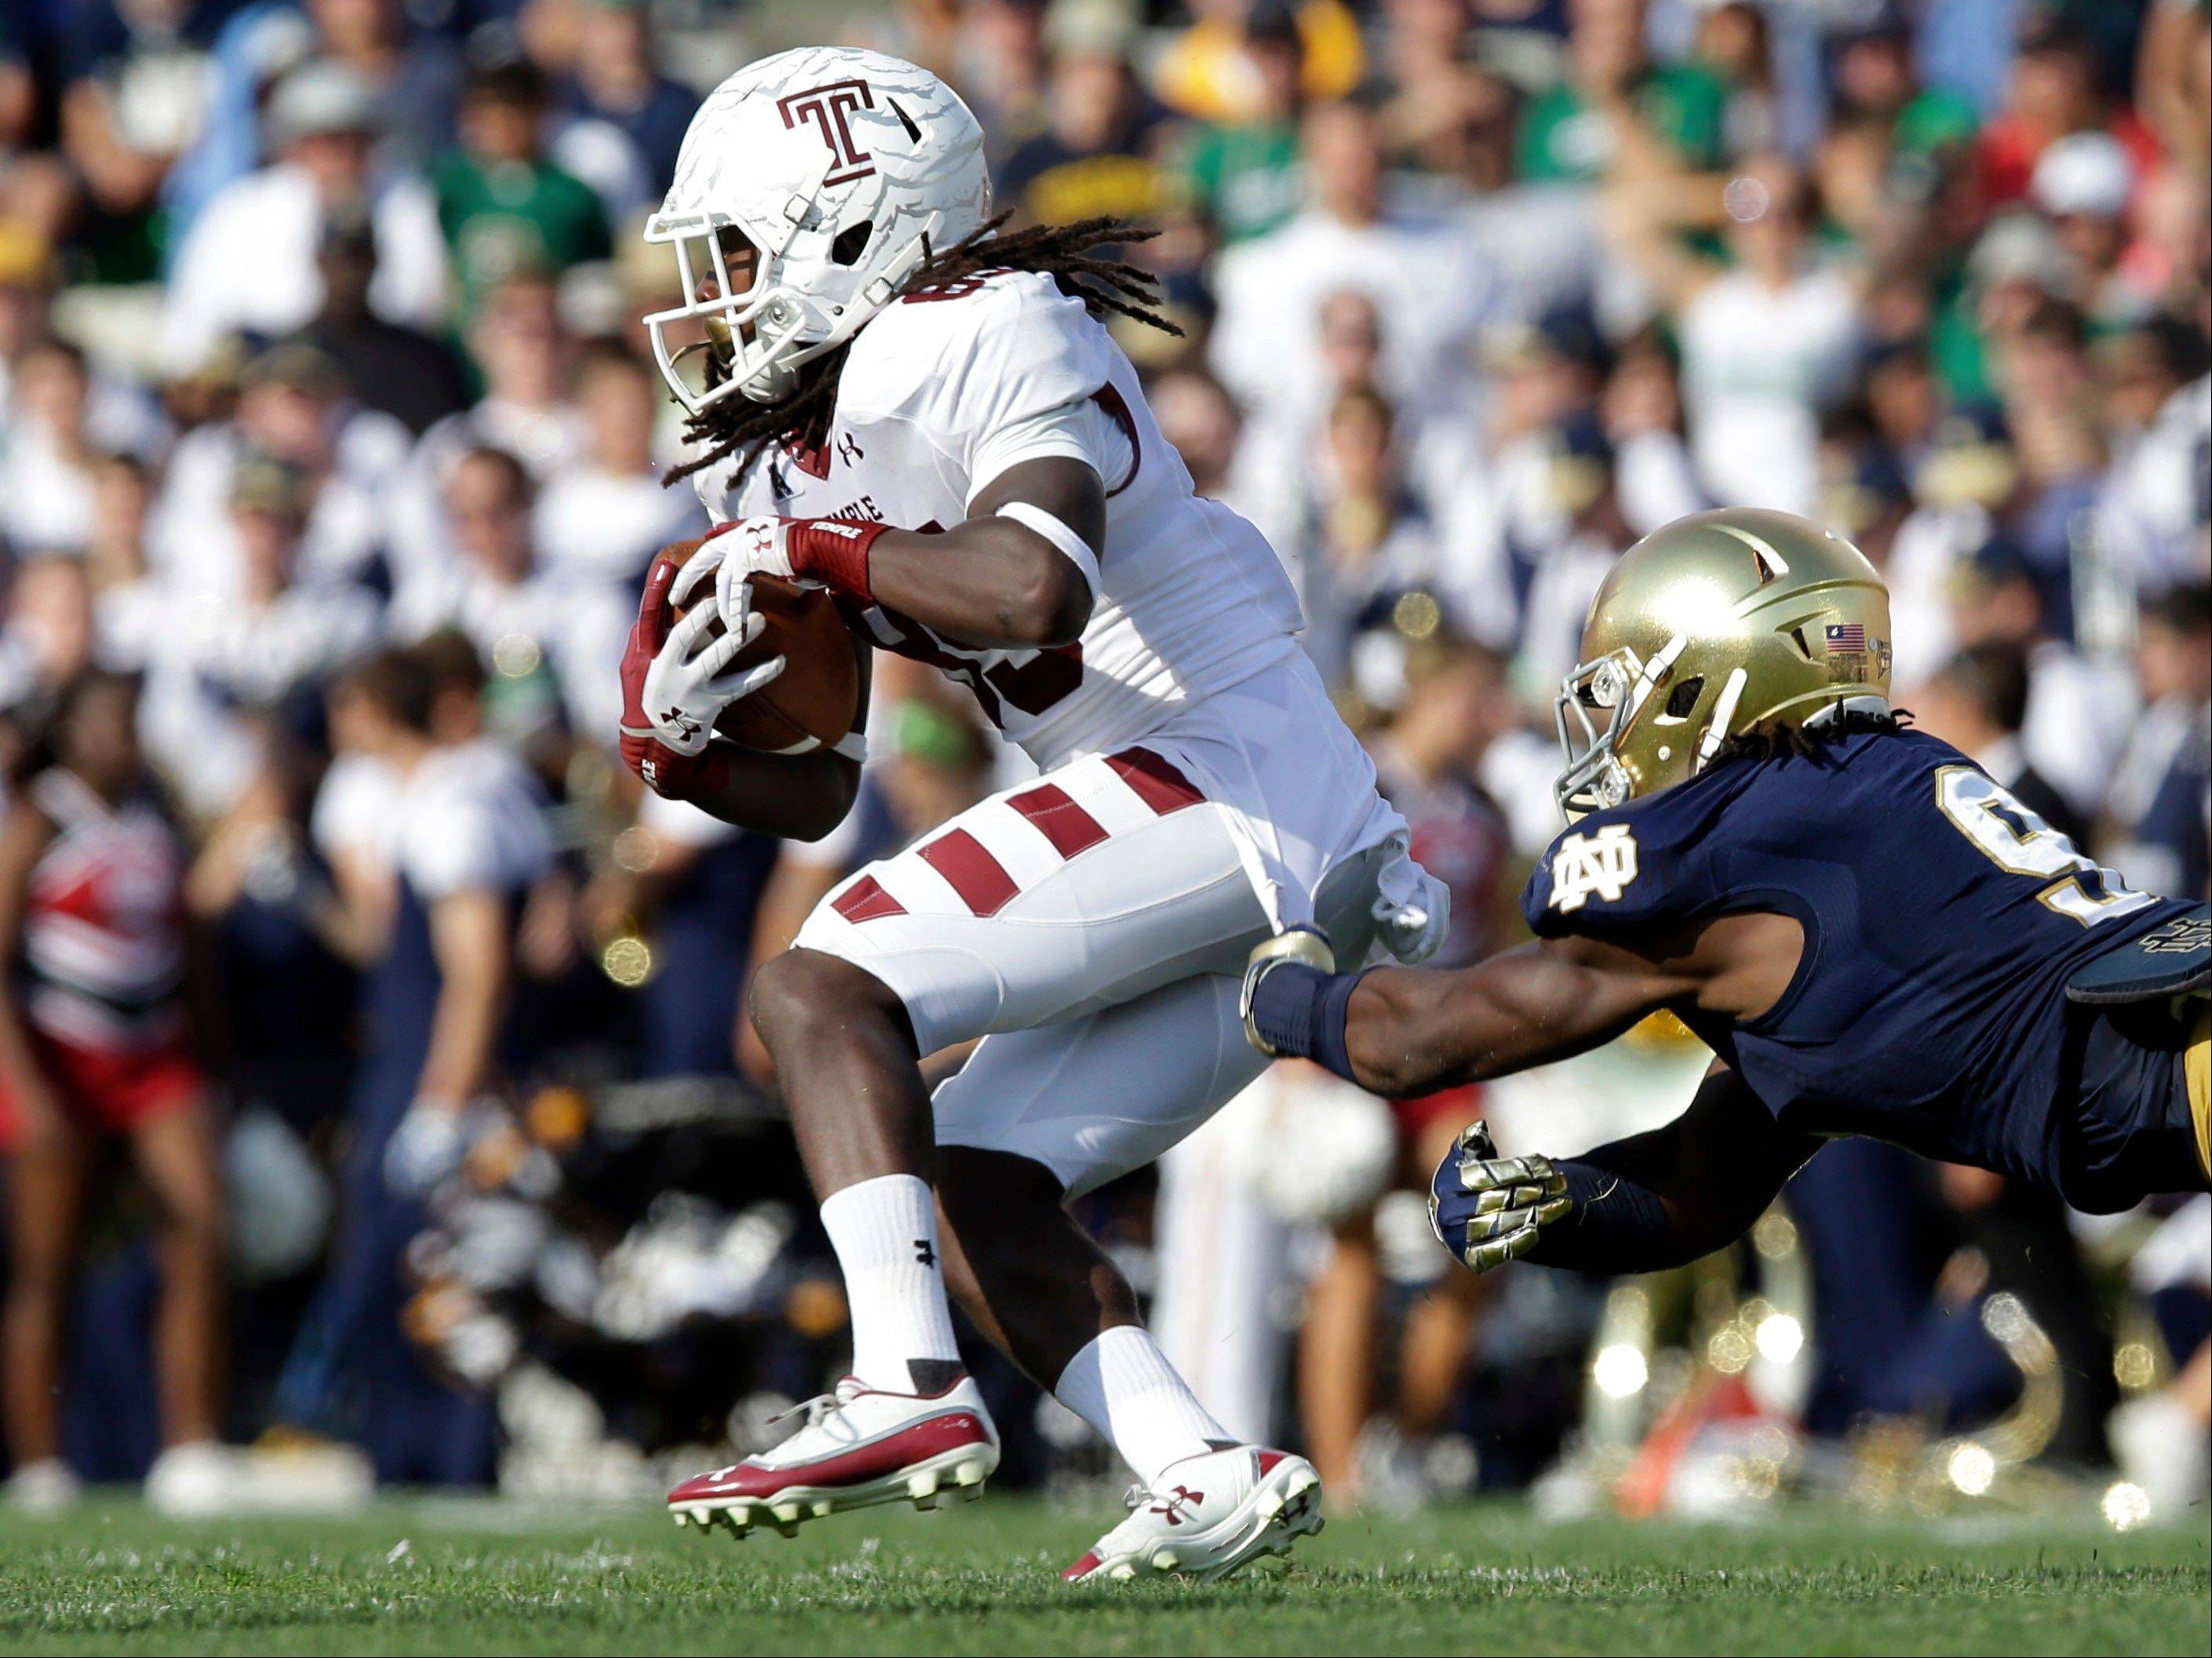 Notre Dame linebacker Jaylon Smith tackles Temple wide receiver Nate Hairston during the second half of the Aug. 31 game in South Bend, Ind.